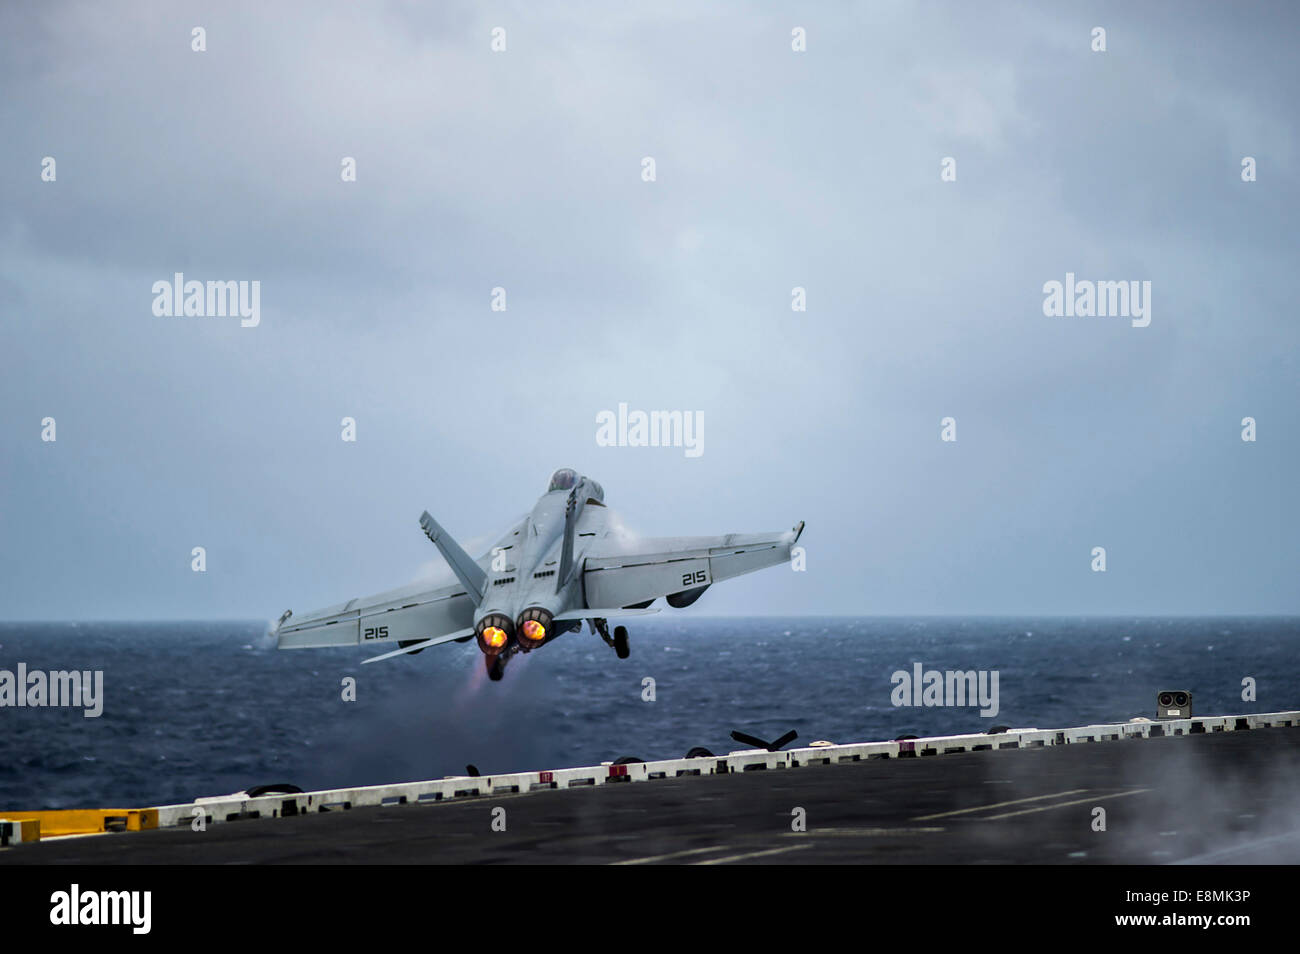 South China Sea, November 5, 2013 - An F/A-18E Super Hornet launches from the aircraft carrier USS George Washington - Stock Image